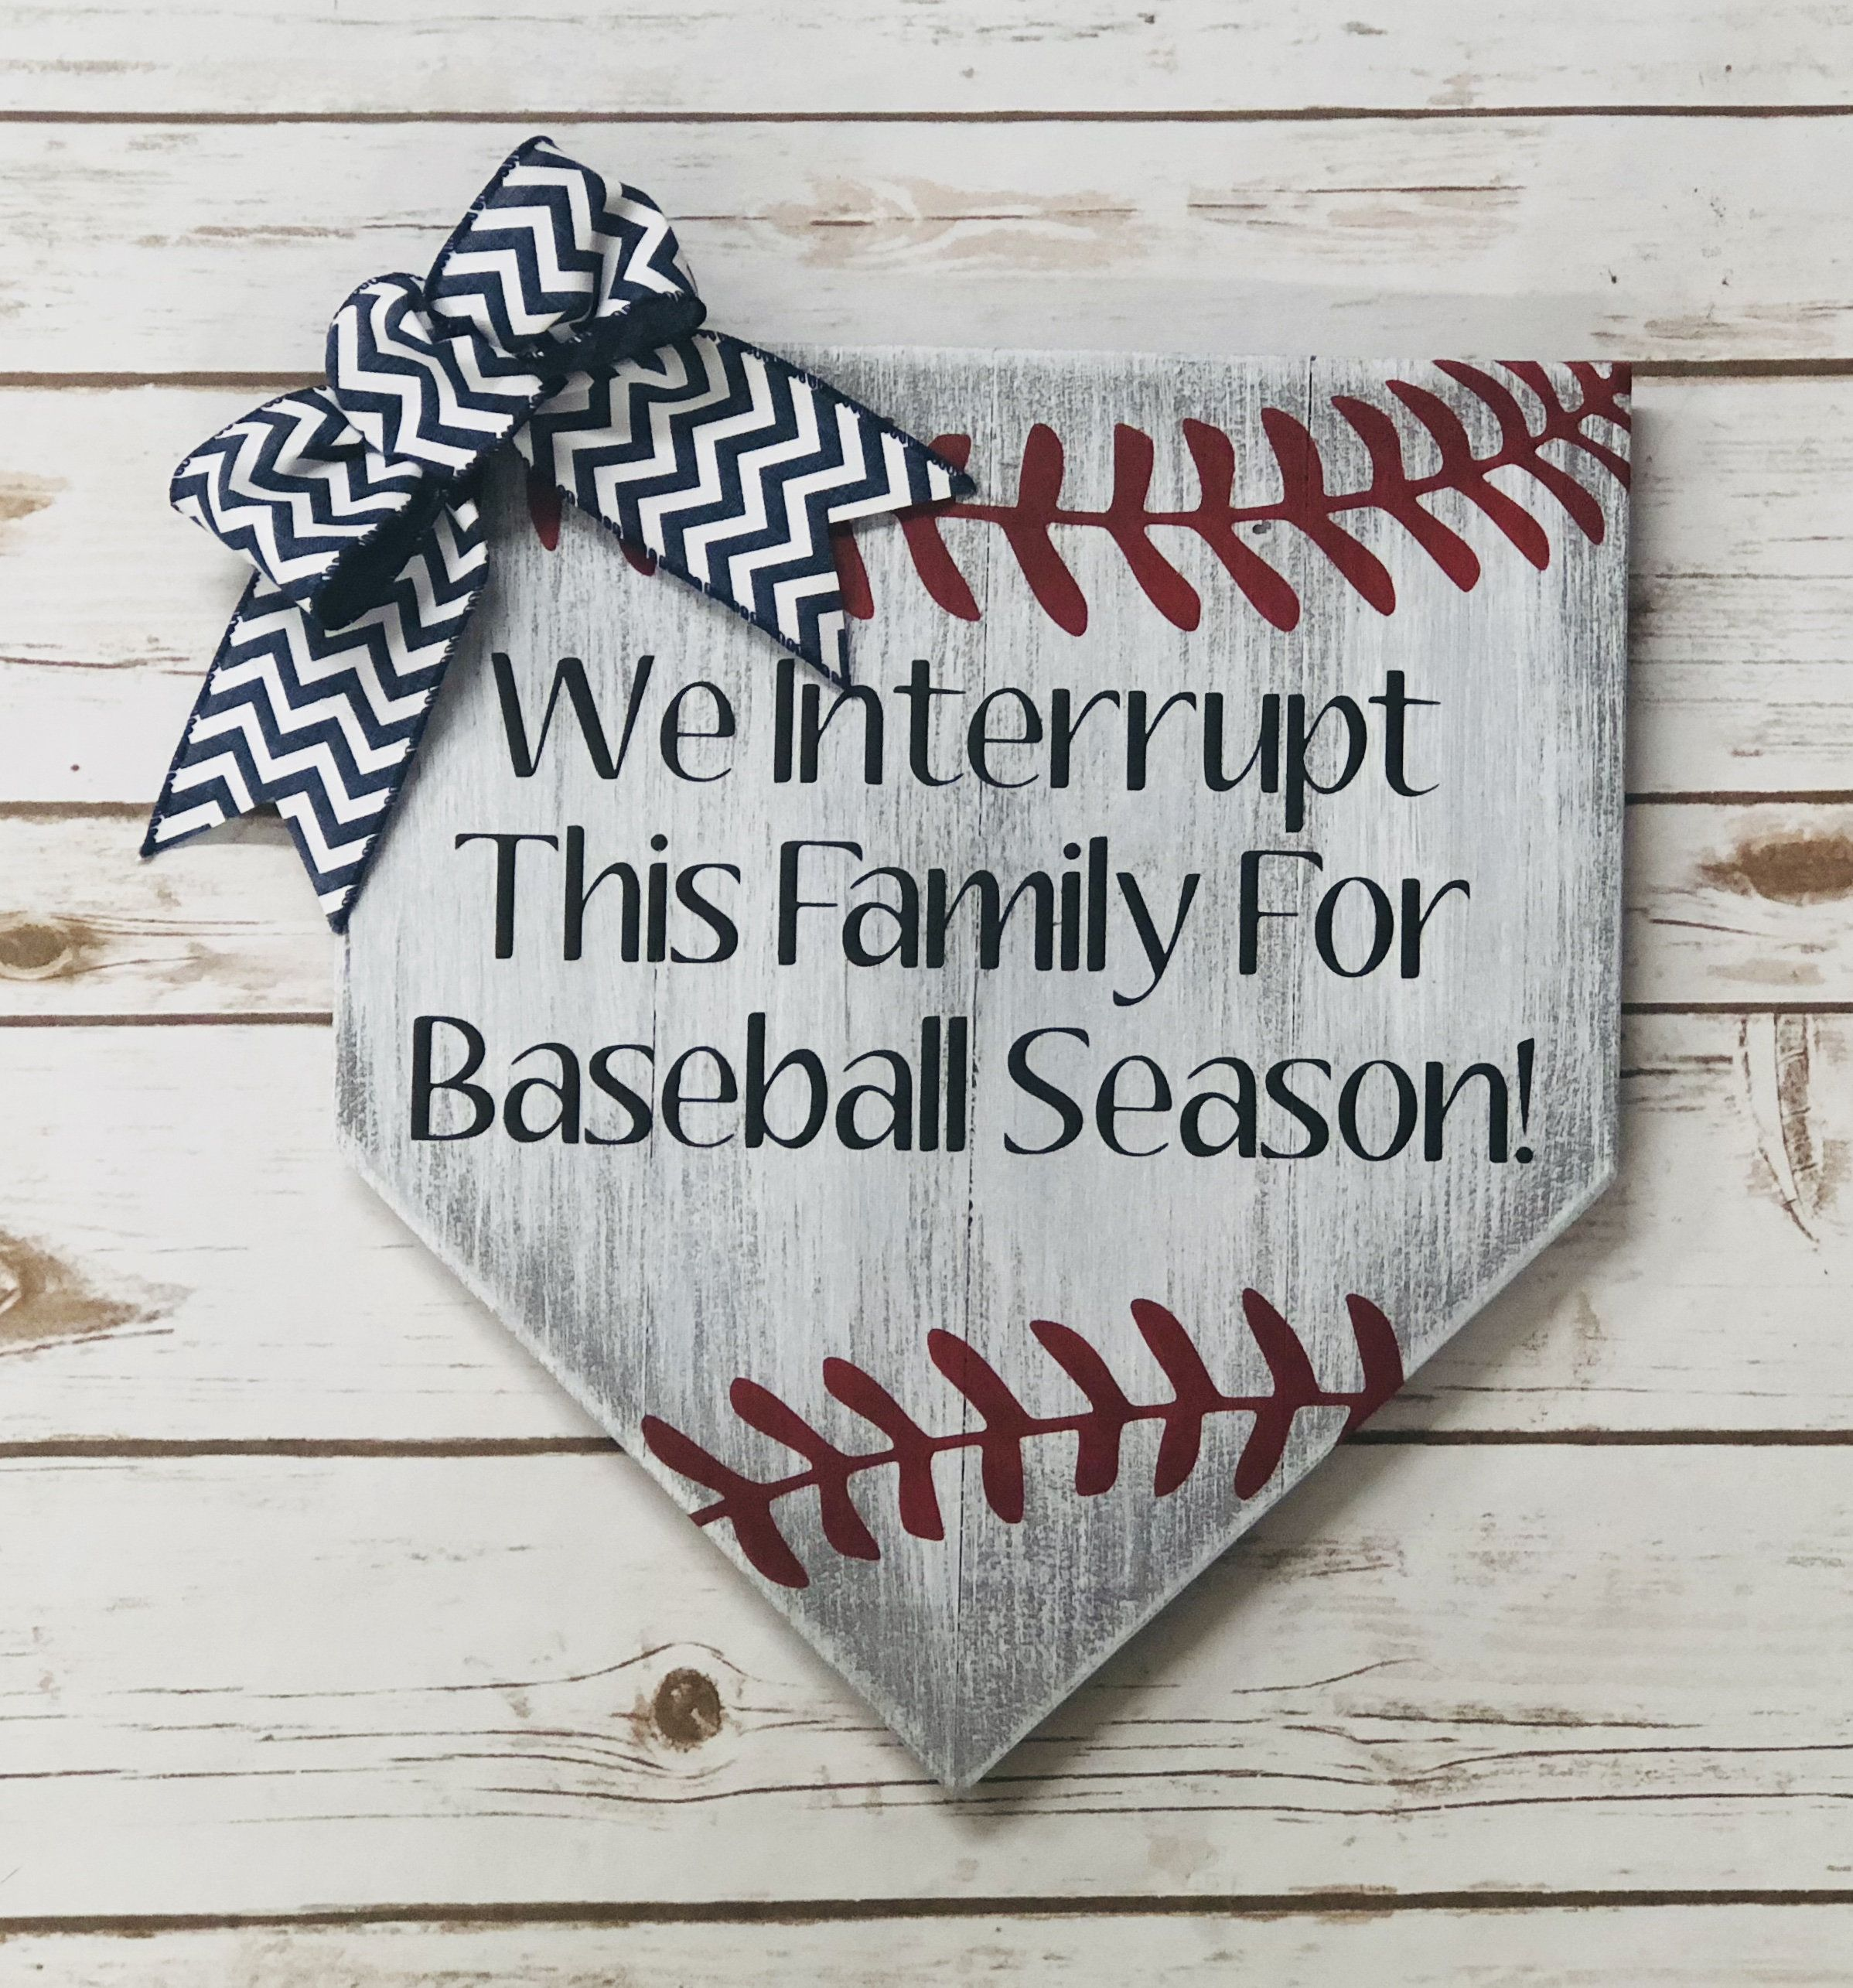 We interrupt this family for baseball season by